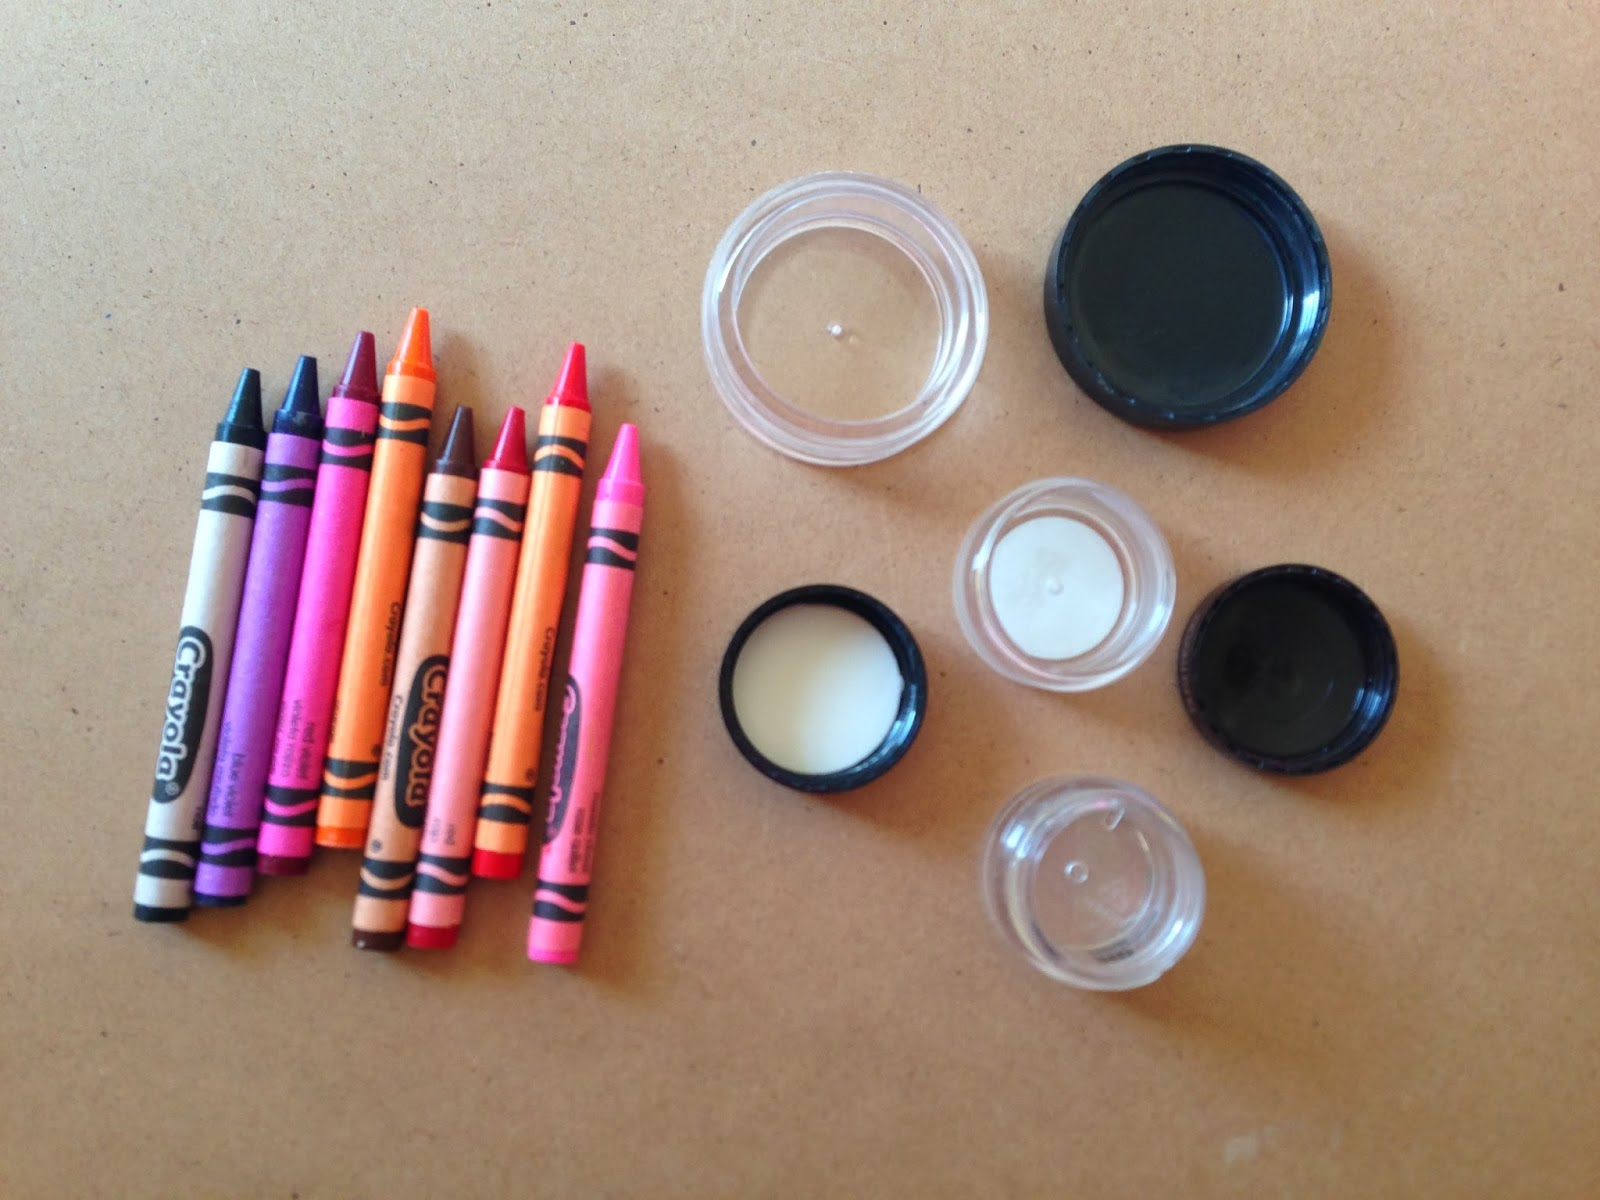 1. Crayons of your choice 2. 1/2 tsp of any type of oil (olive, almond, jojoba, etc.) 3. Vaseline or Shea butter 4. Stick to stir with 5. Small container 6. Heat source (like a candle or a stove top) 7. Metal spoon to heat ingredients in.